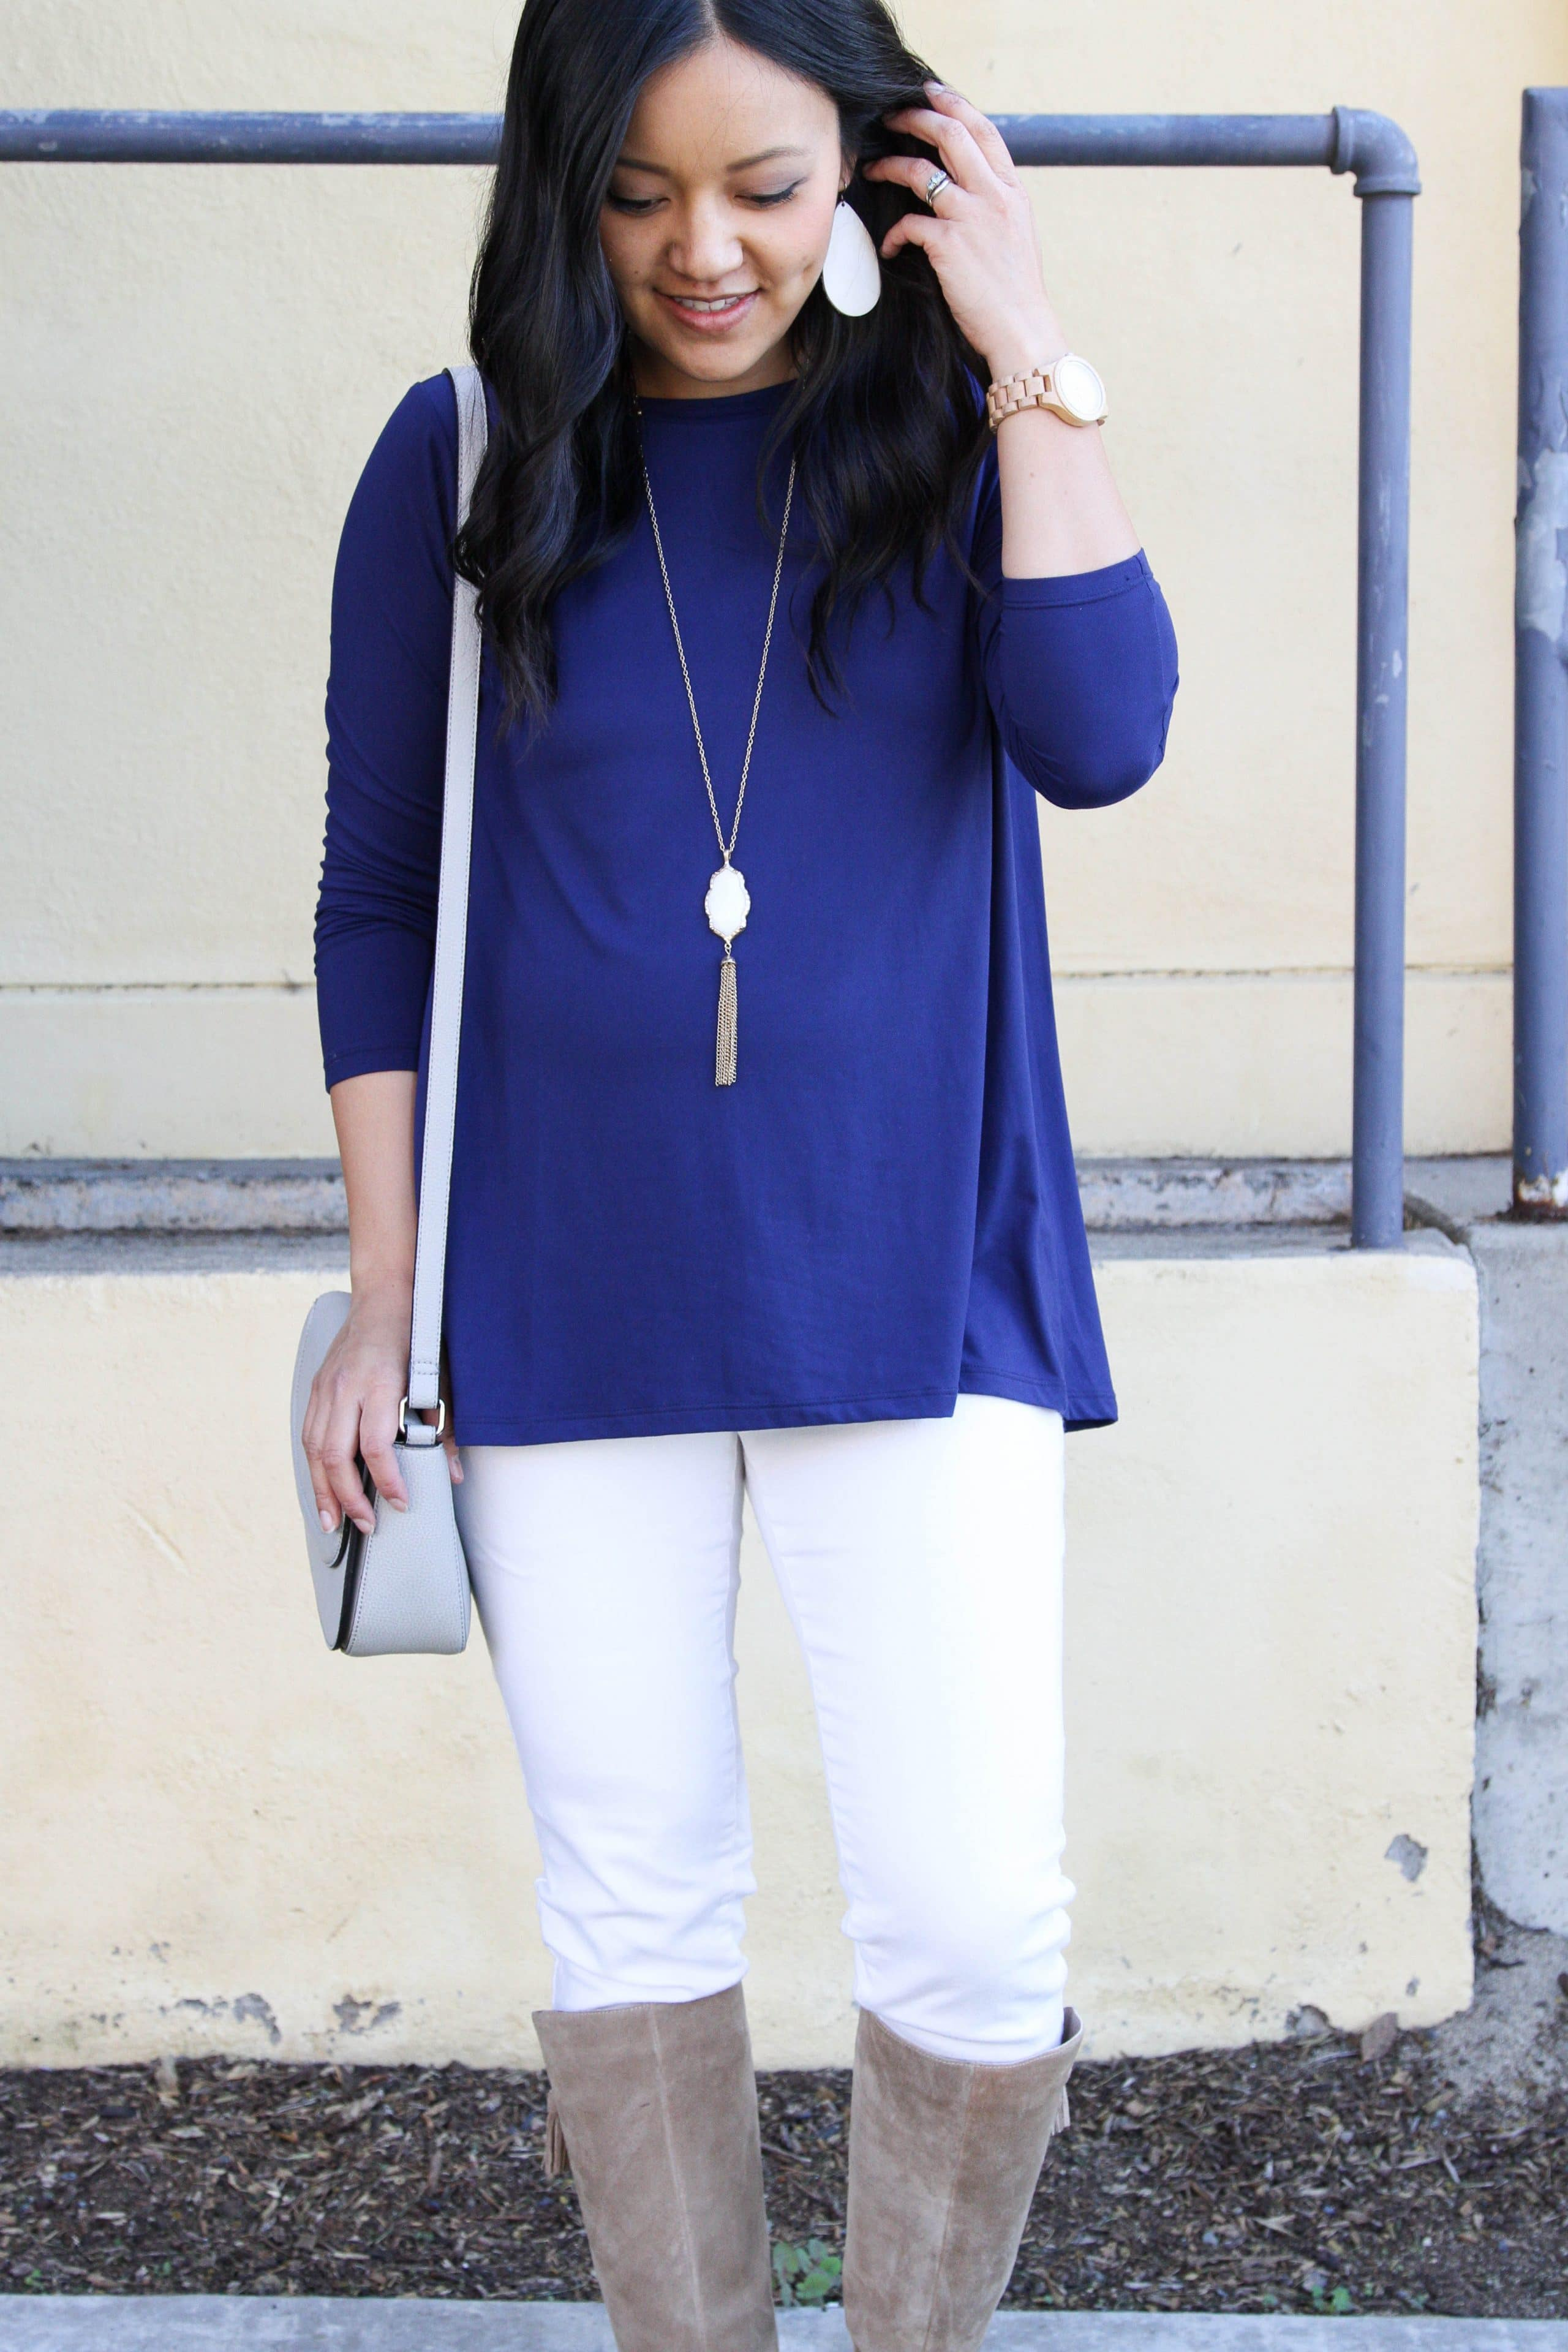 Blue Butter Tee + White Jeans + Boots + Shoulder Bag